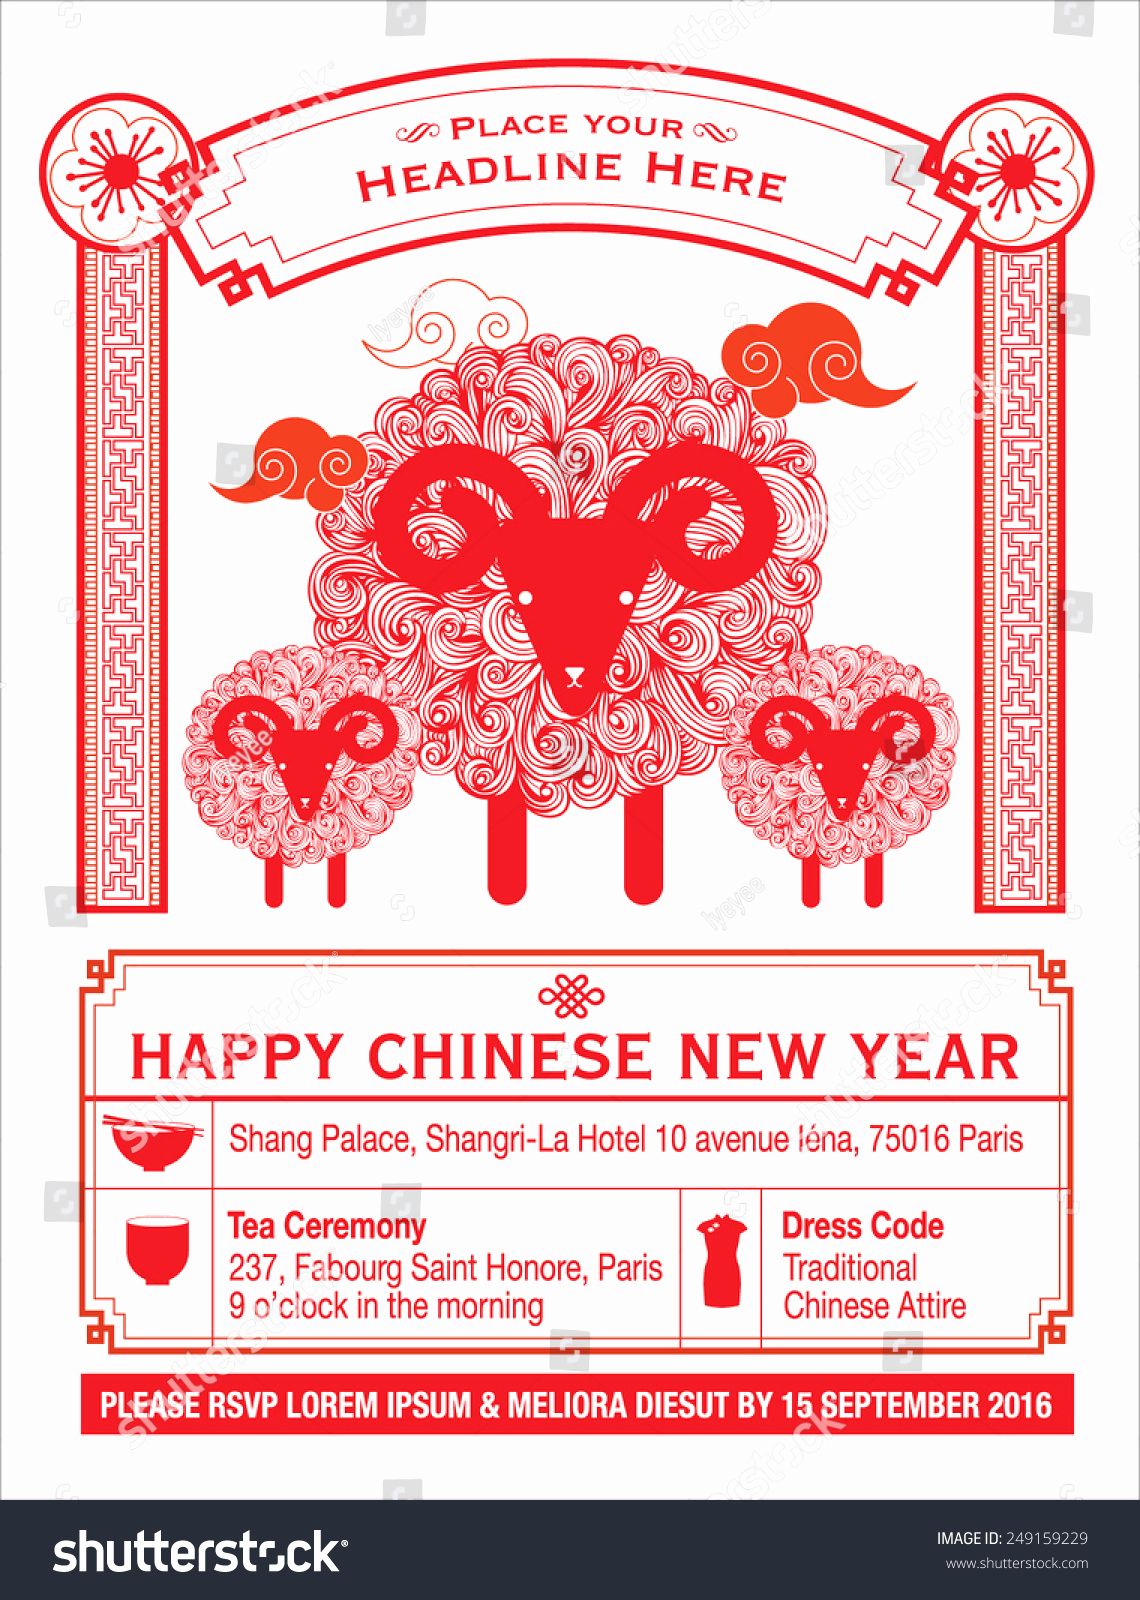 New Year Card Template Luxury Chinese Calendar Chinese New Year Card Stock Vector